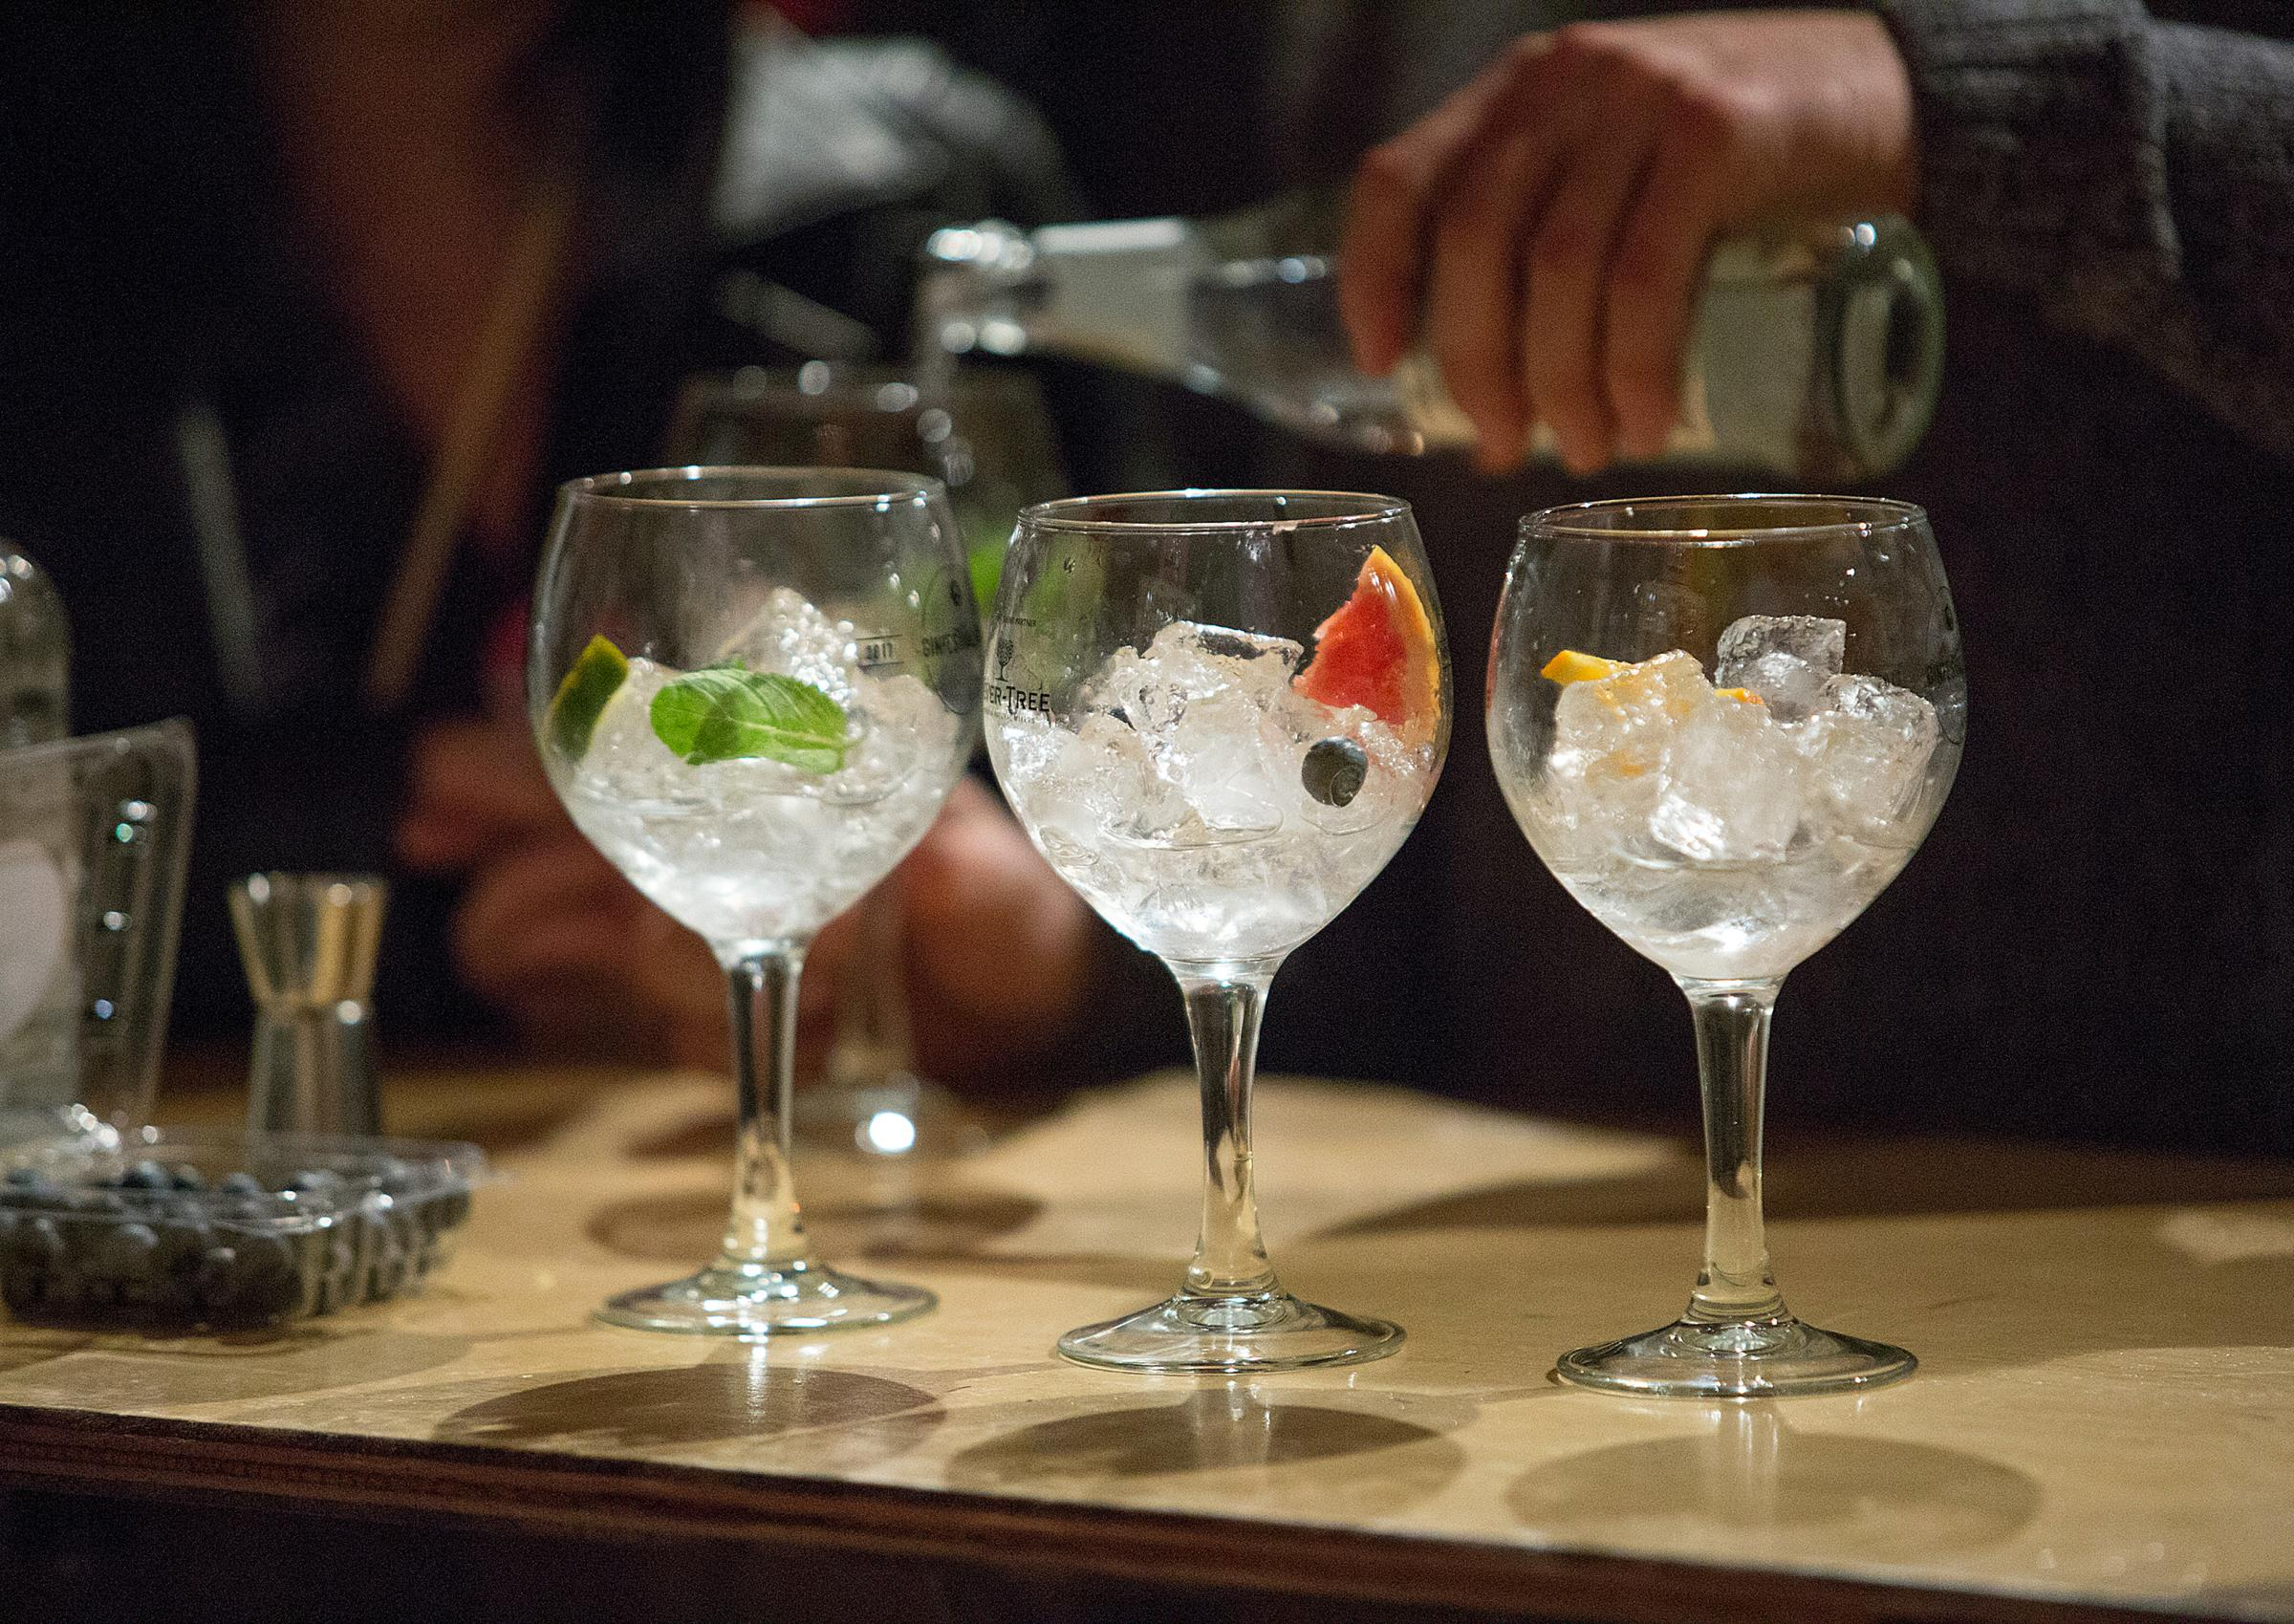 Rosemary Goring: A confusion of infusions as I join up with the gin set